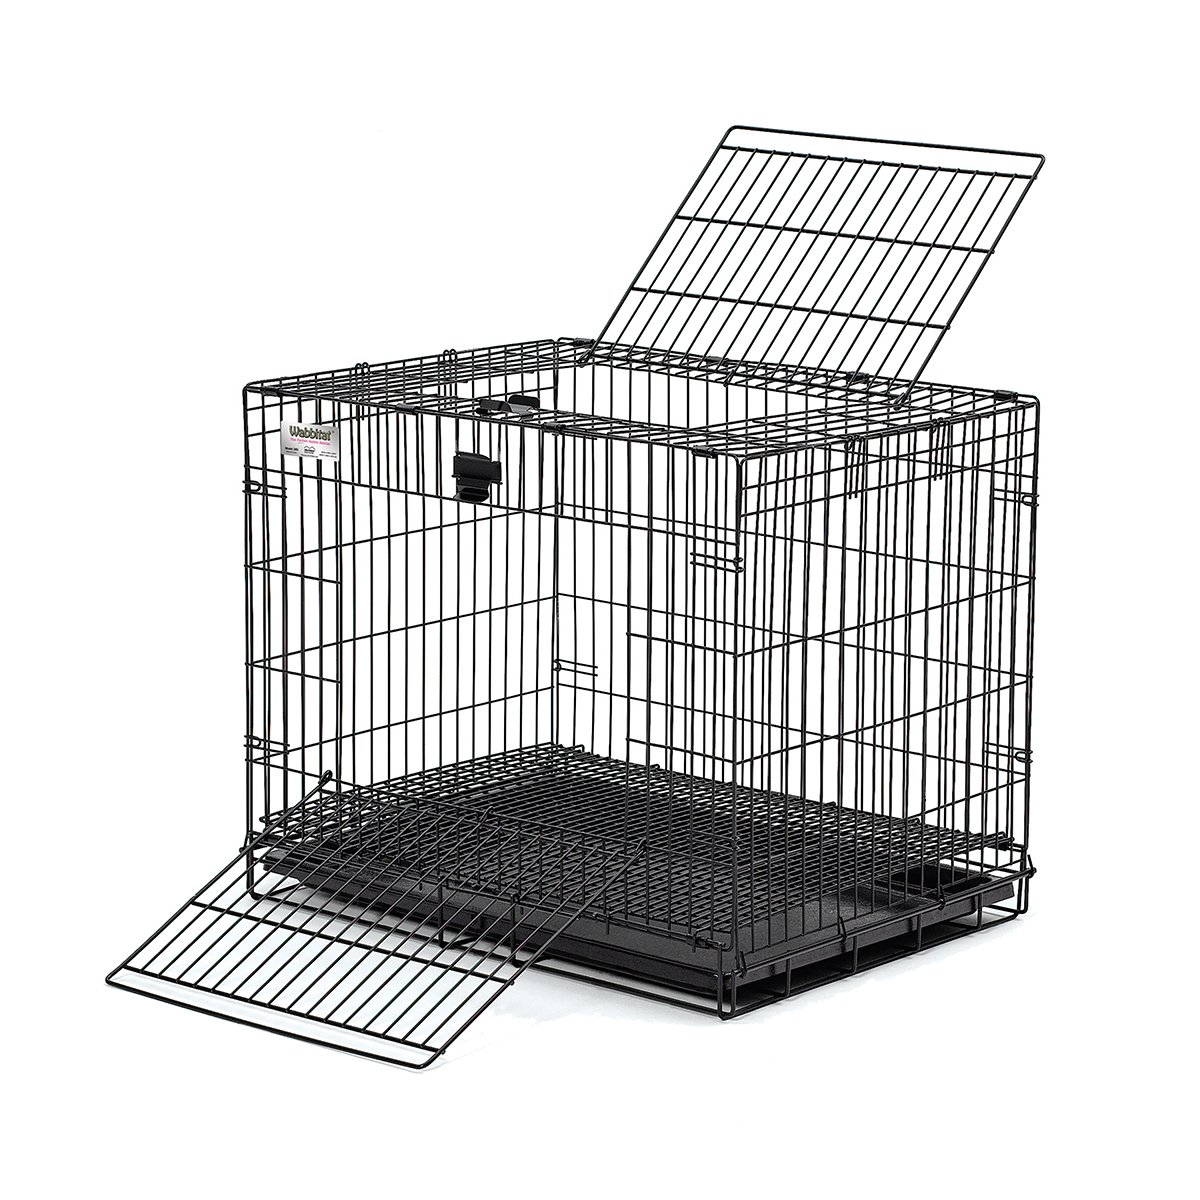 Amazon.com : Midwest Wabbitat Folding Rabbit Cage : Collapsible ...